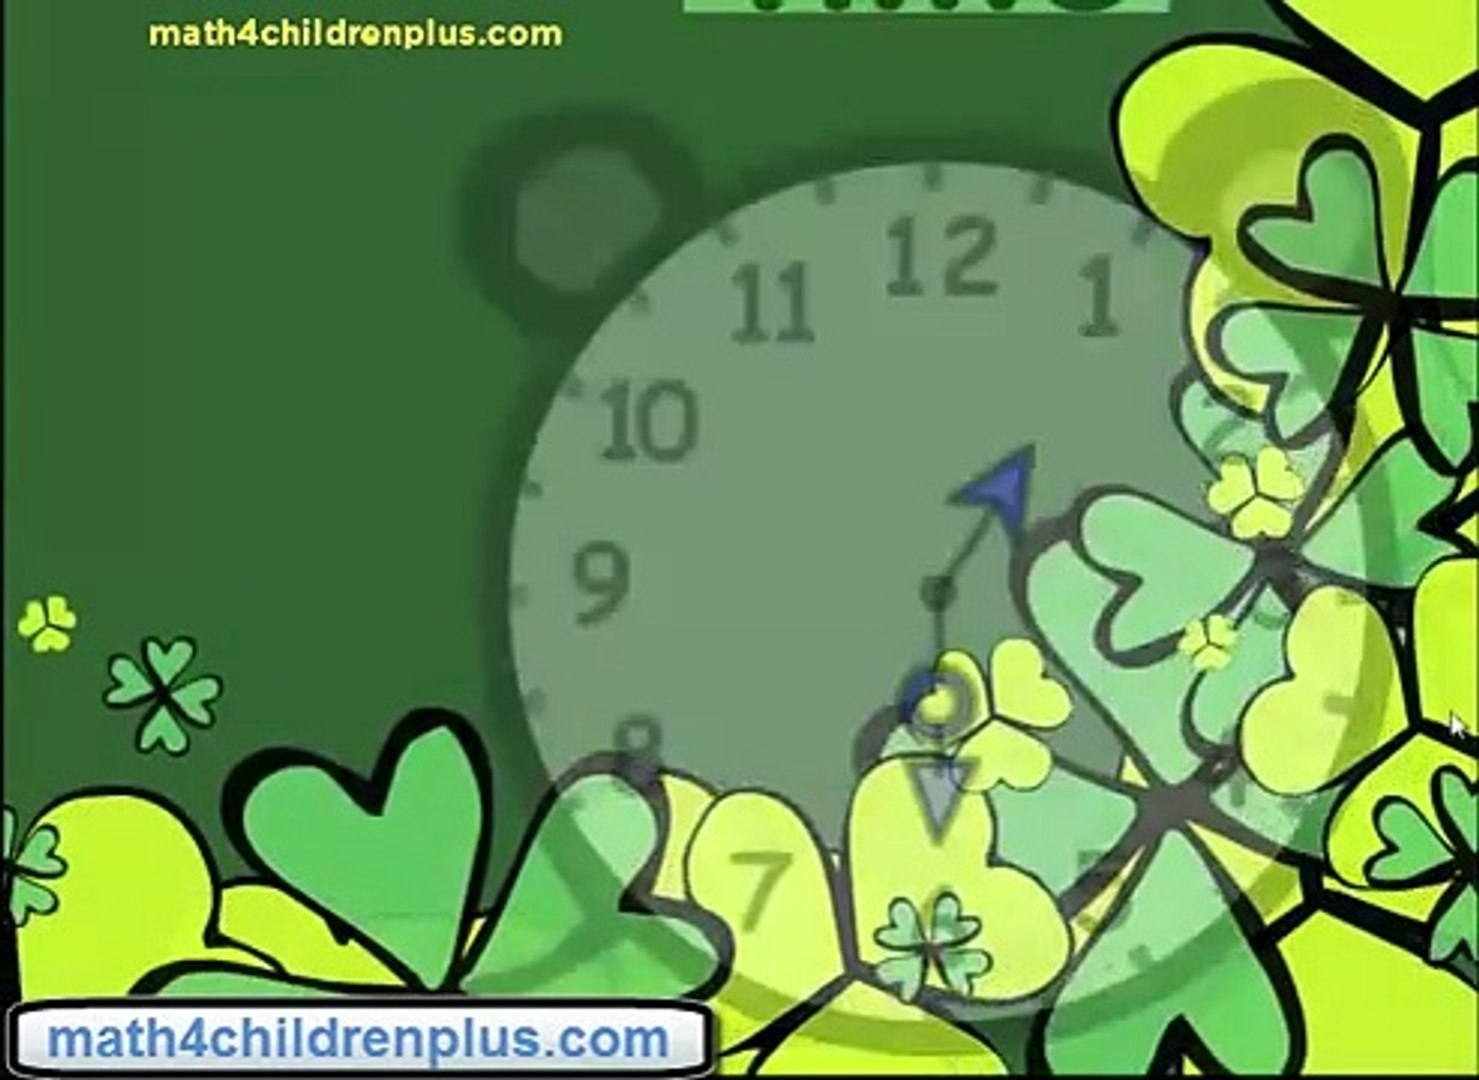 Teach kids how to tell the time at half past the hour e.g. 1:30, 2:30, 3:30 or half past o